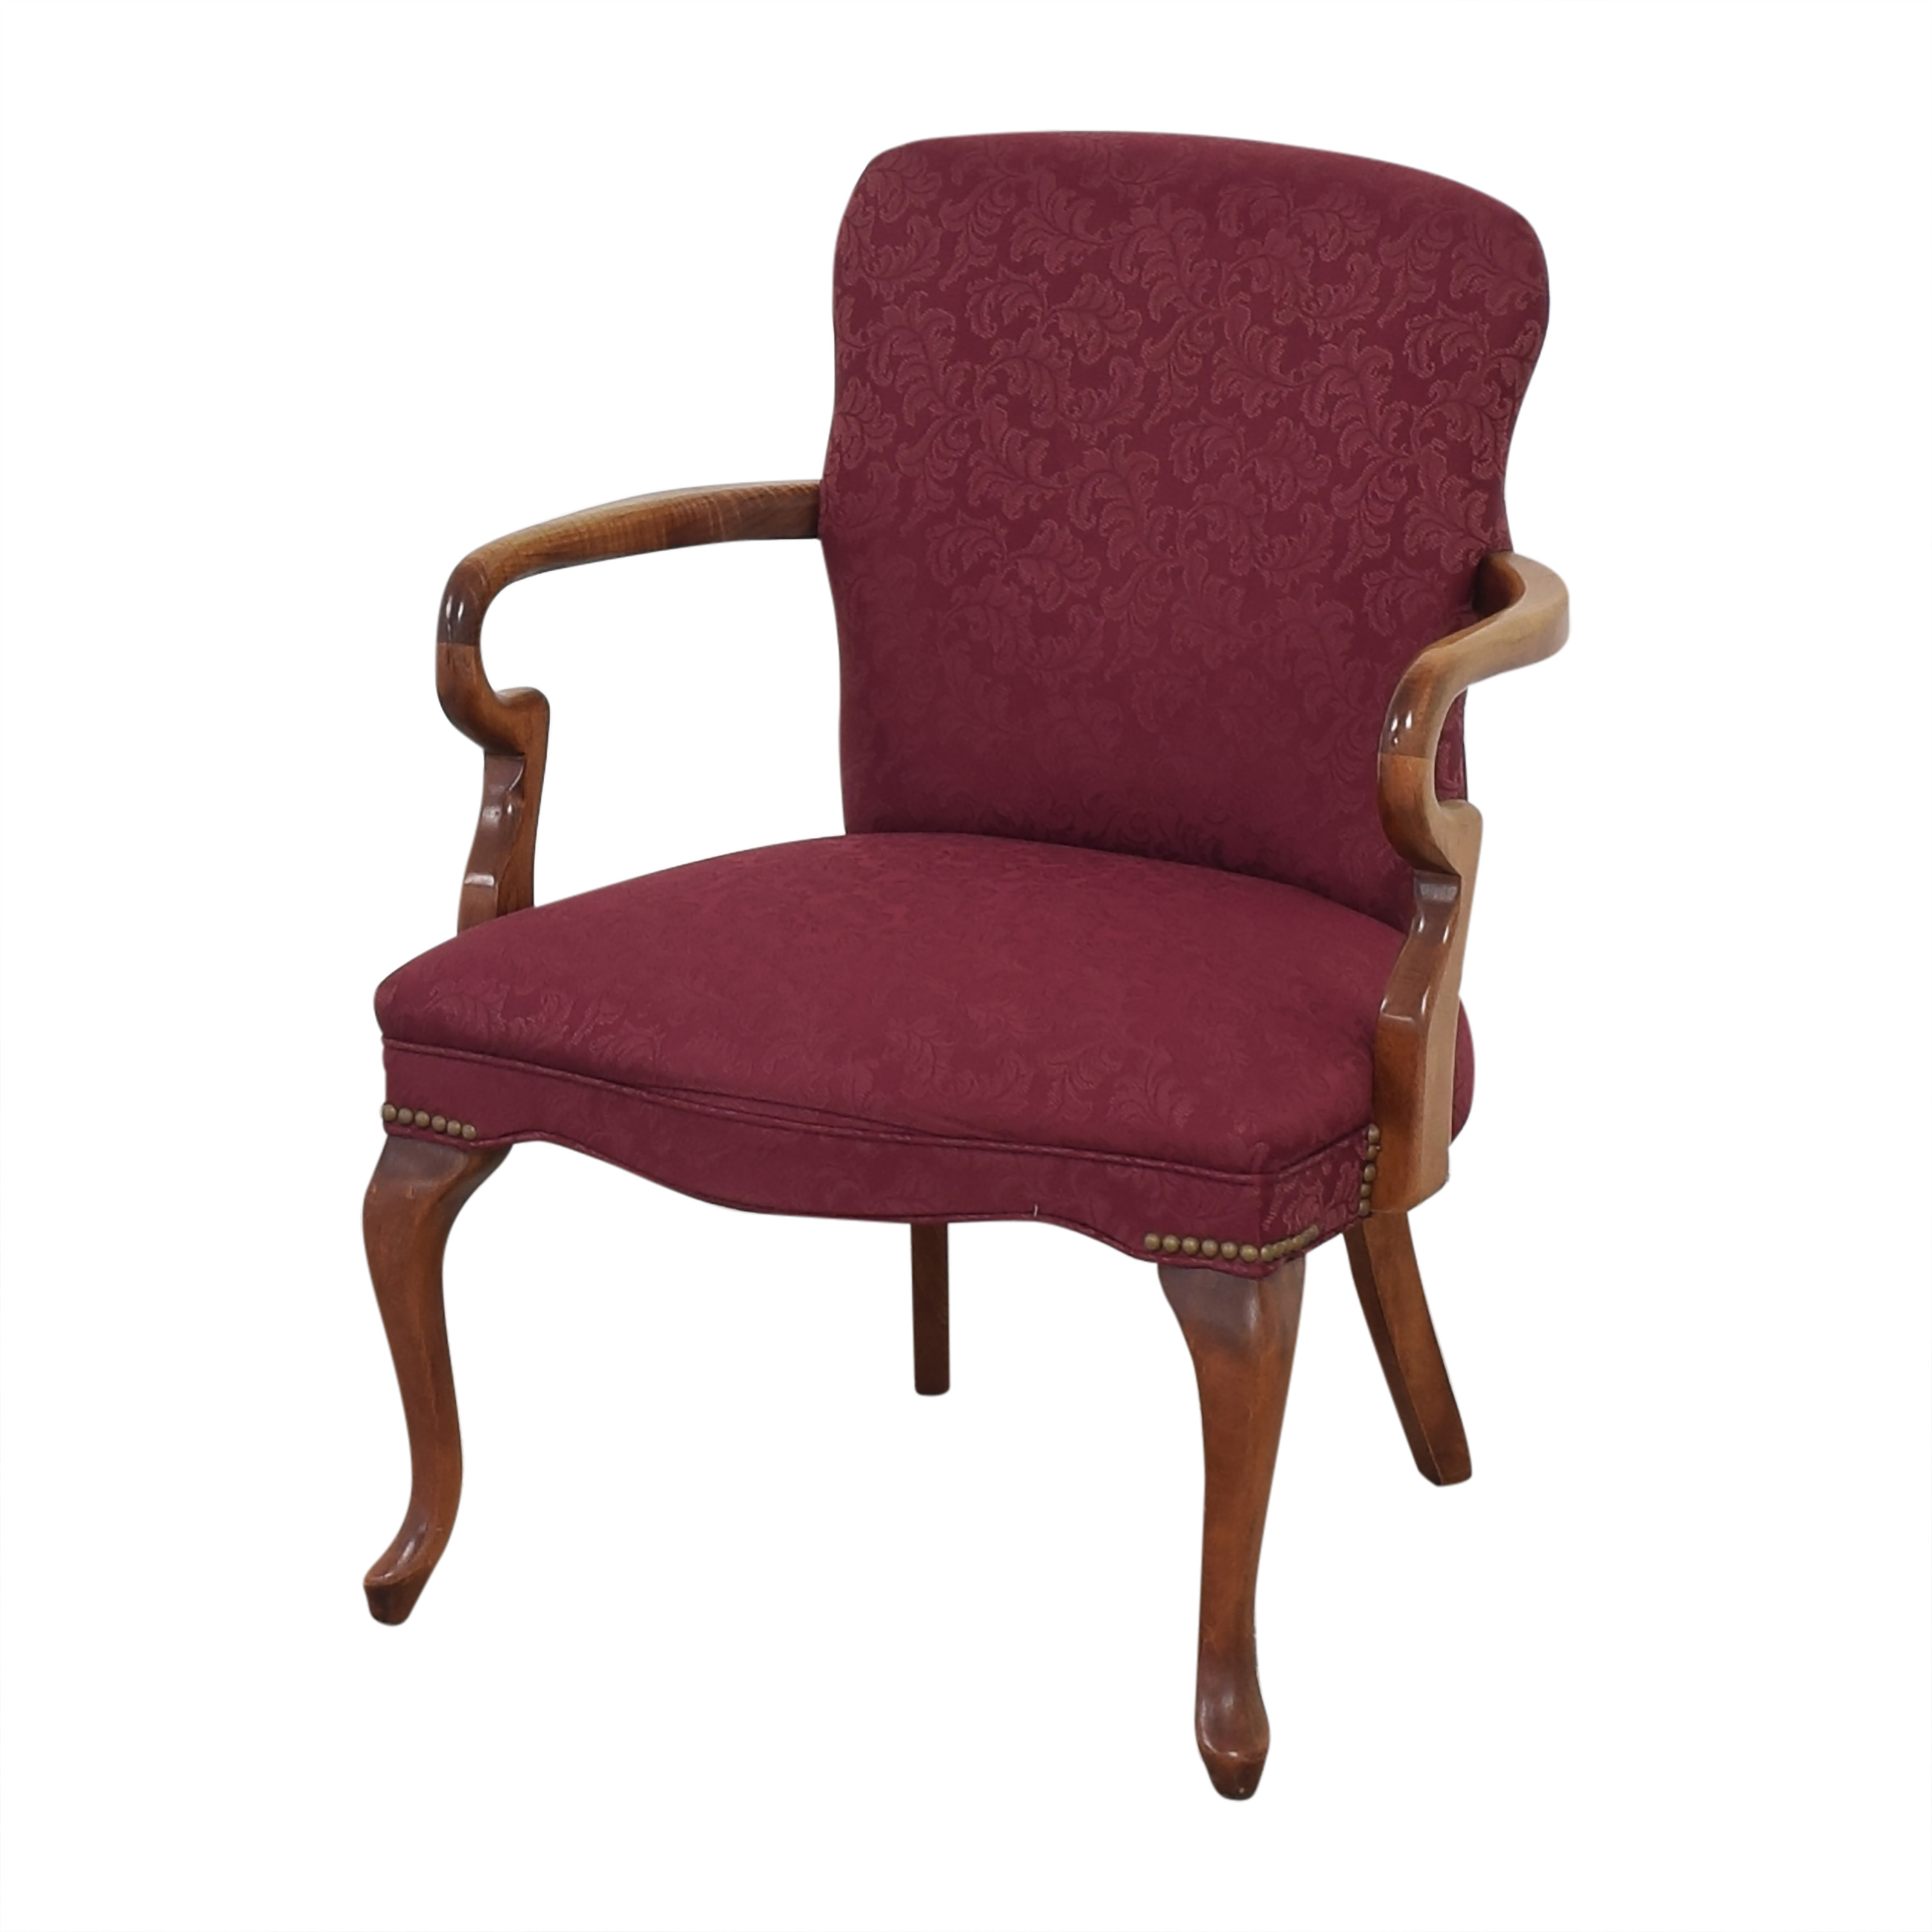 Ethan Allen Ethan Allen Accent Chair on sale